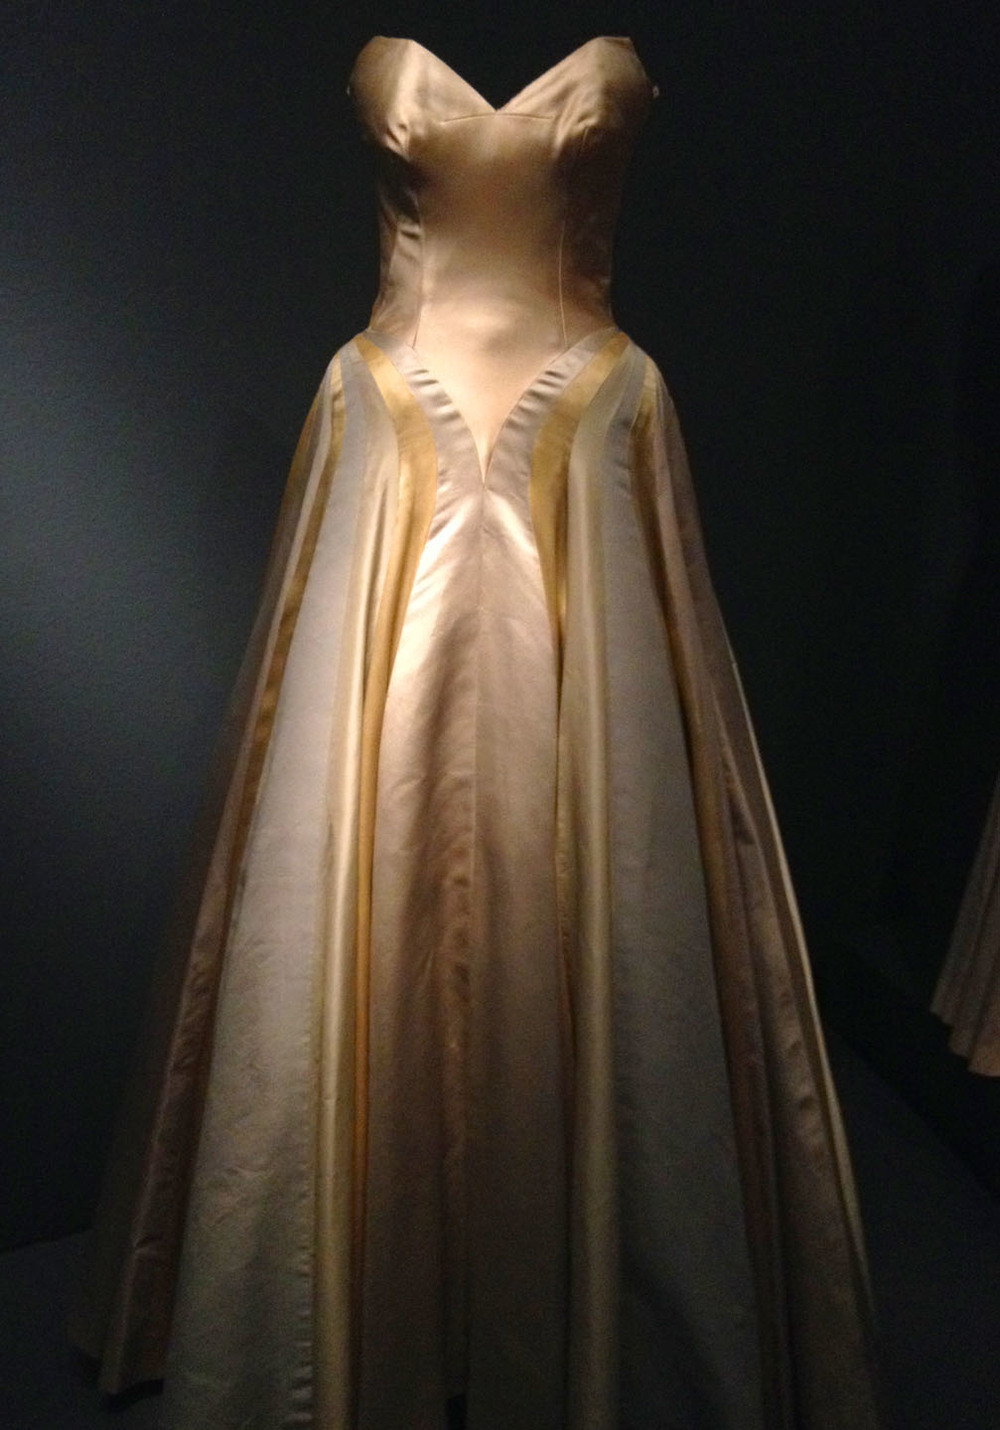 James-ribbon-gown.jpg